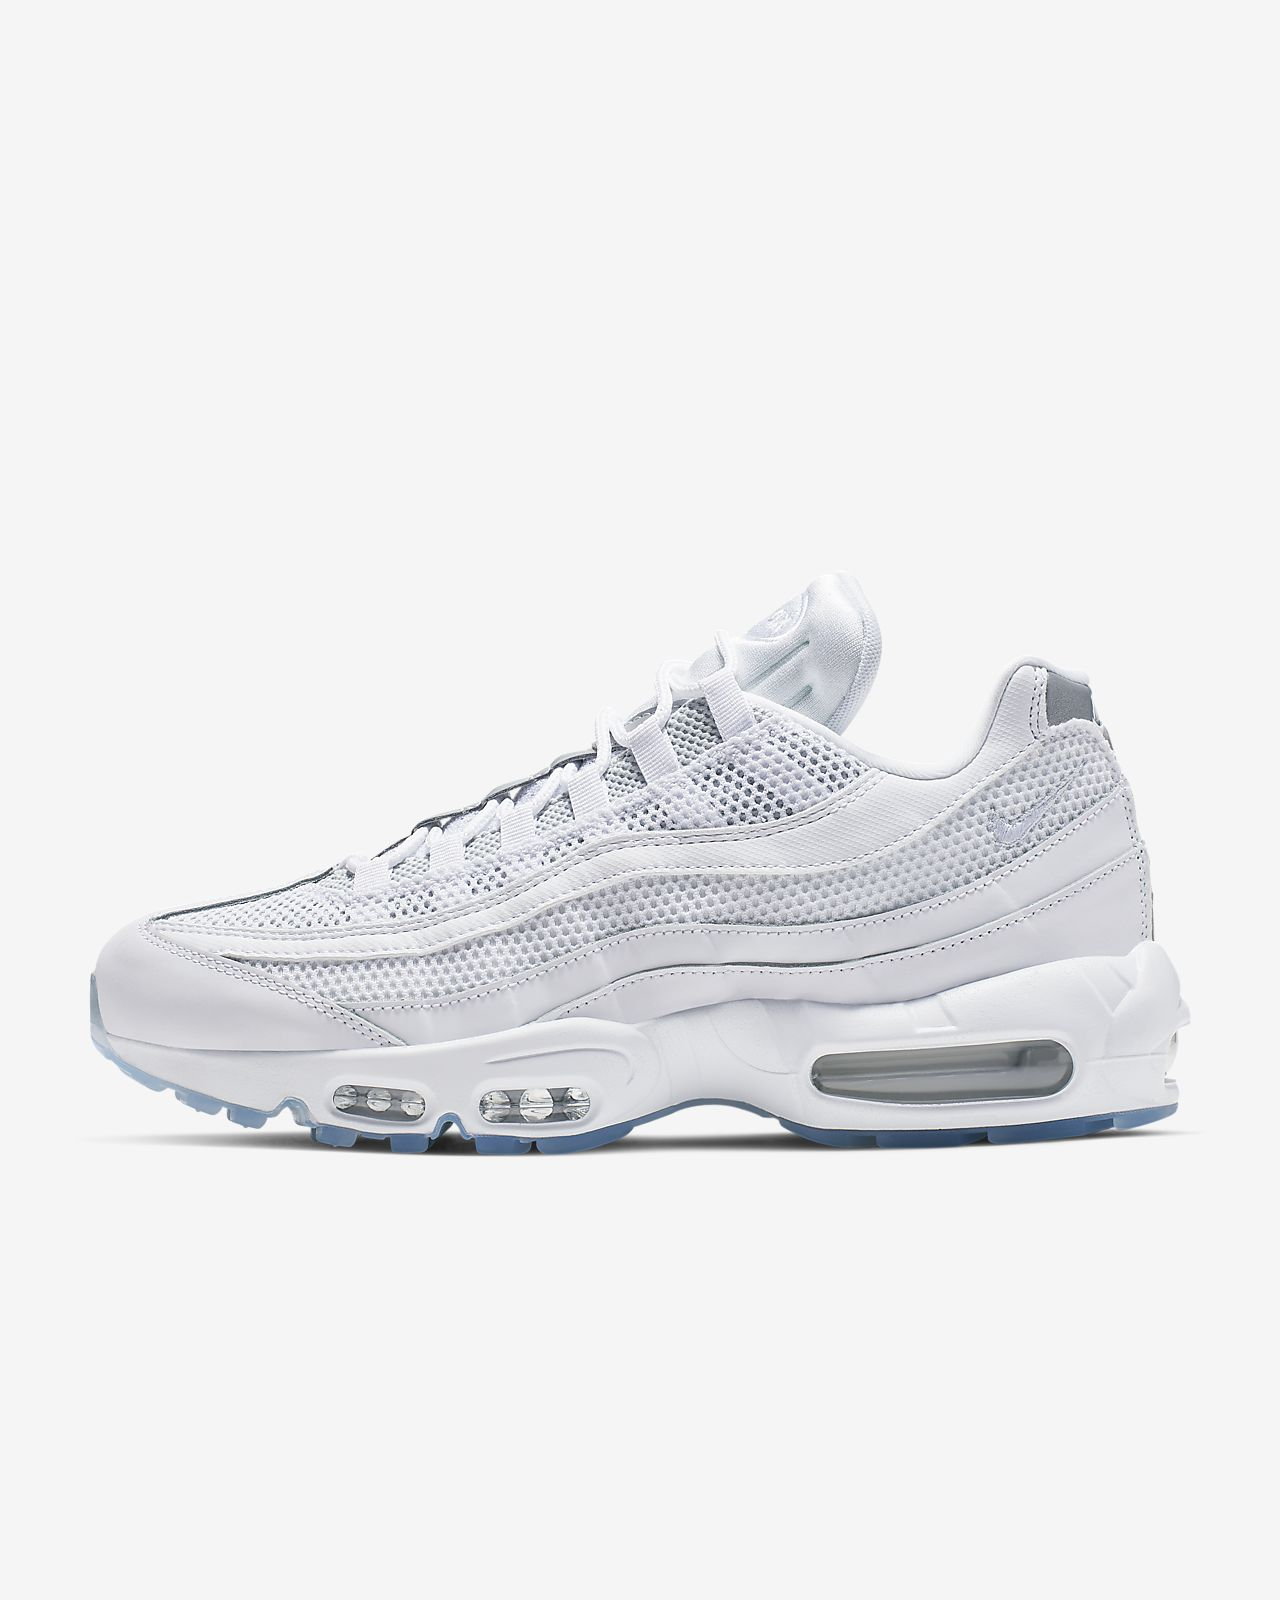 2air max essential uomo